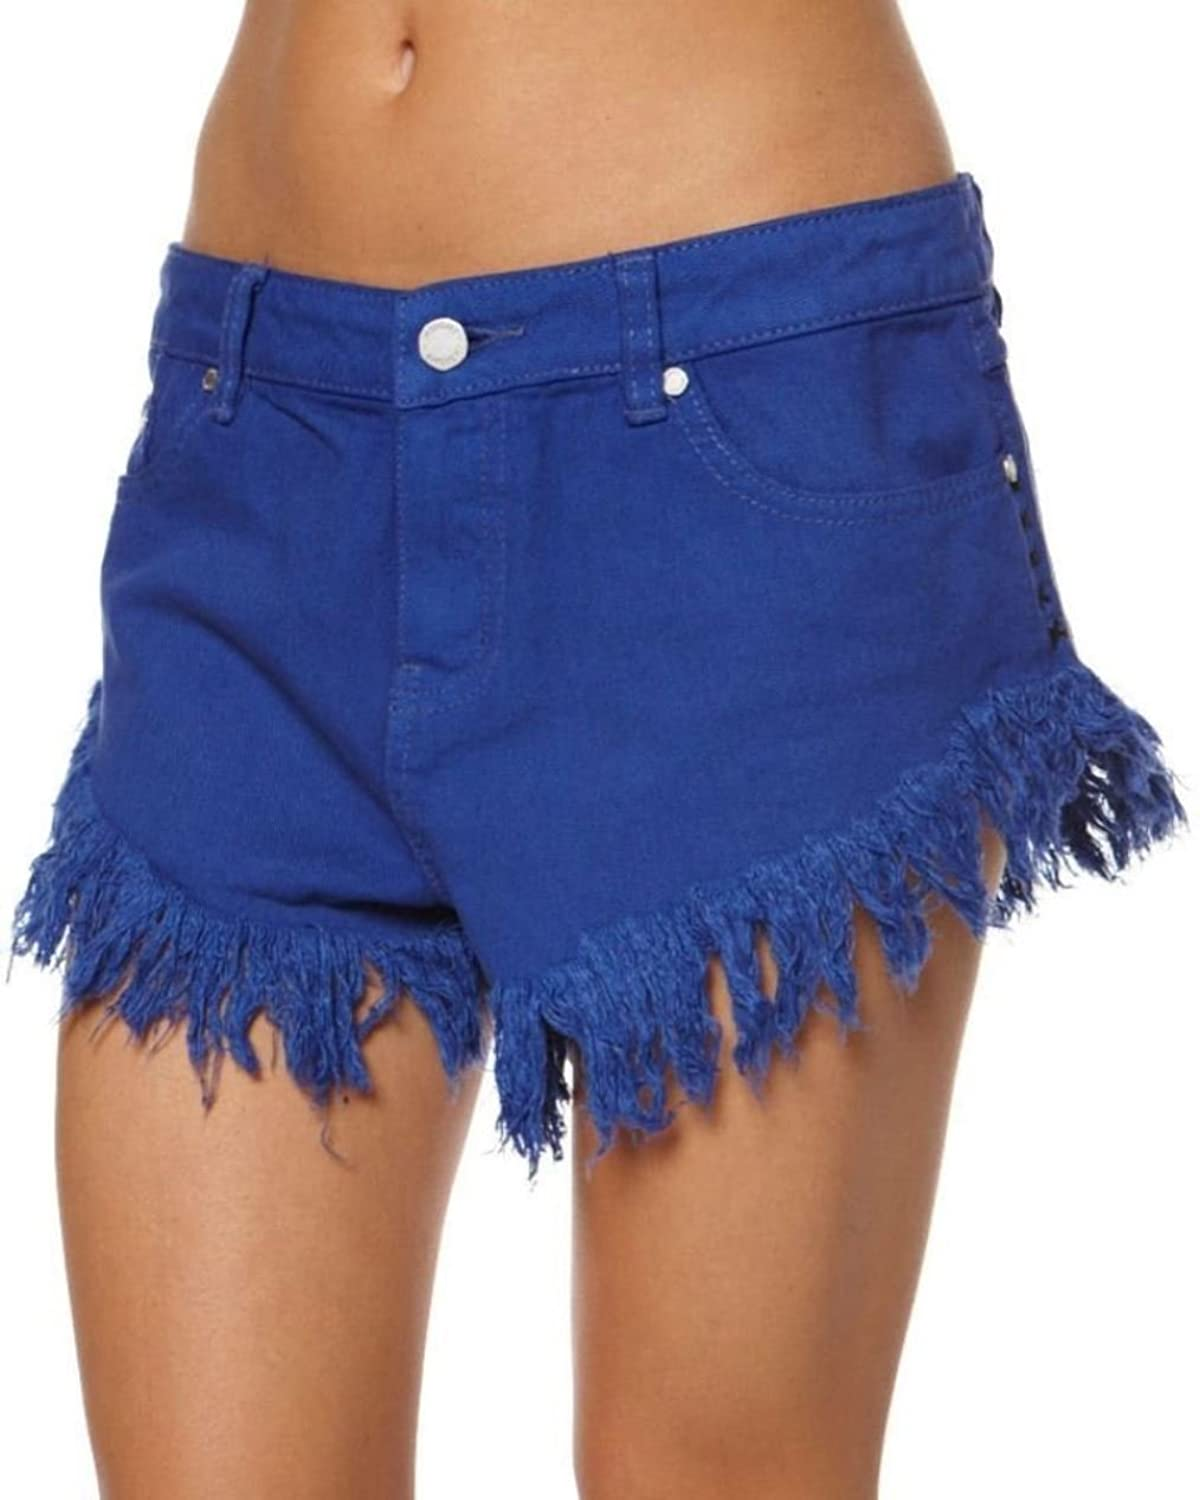 Insight Women's Dipper Cut Offs, Blue, 26